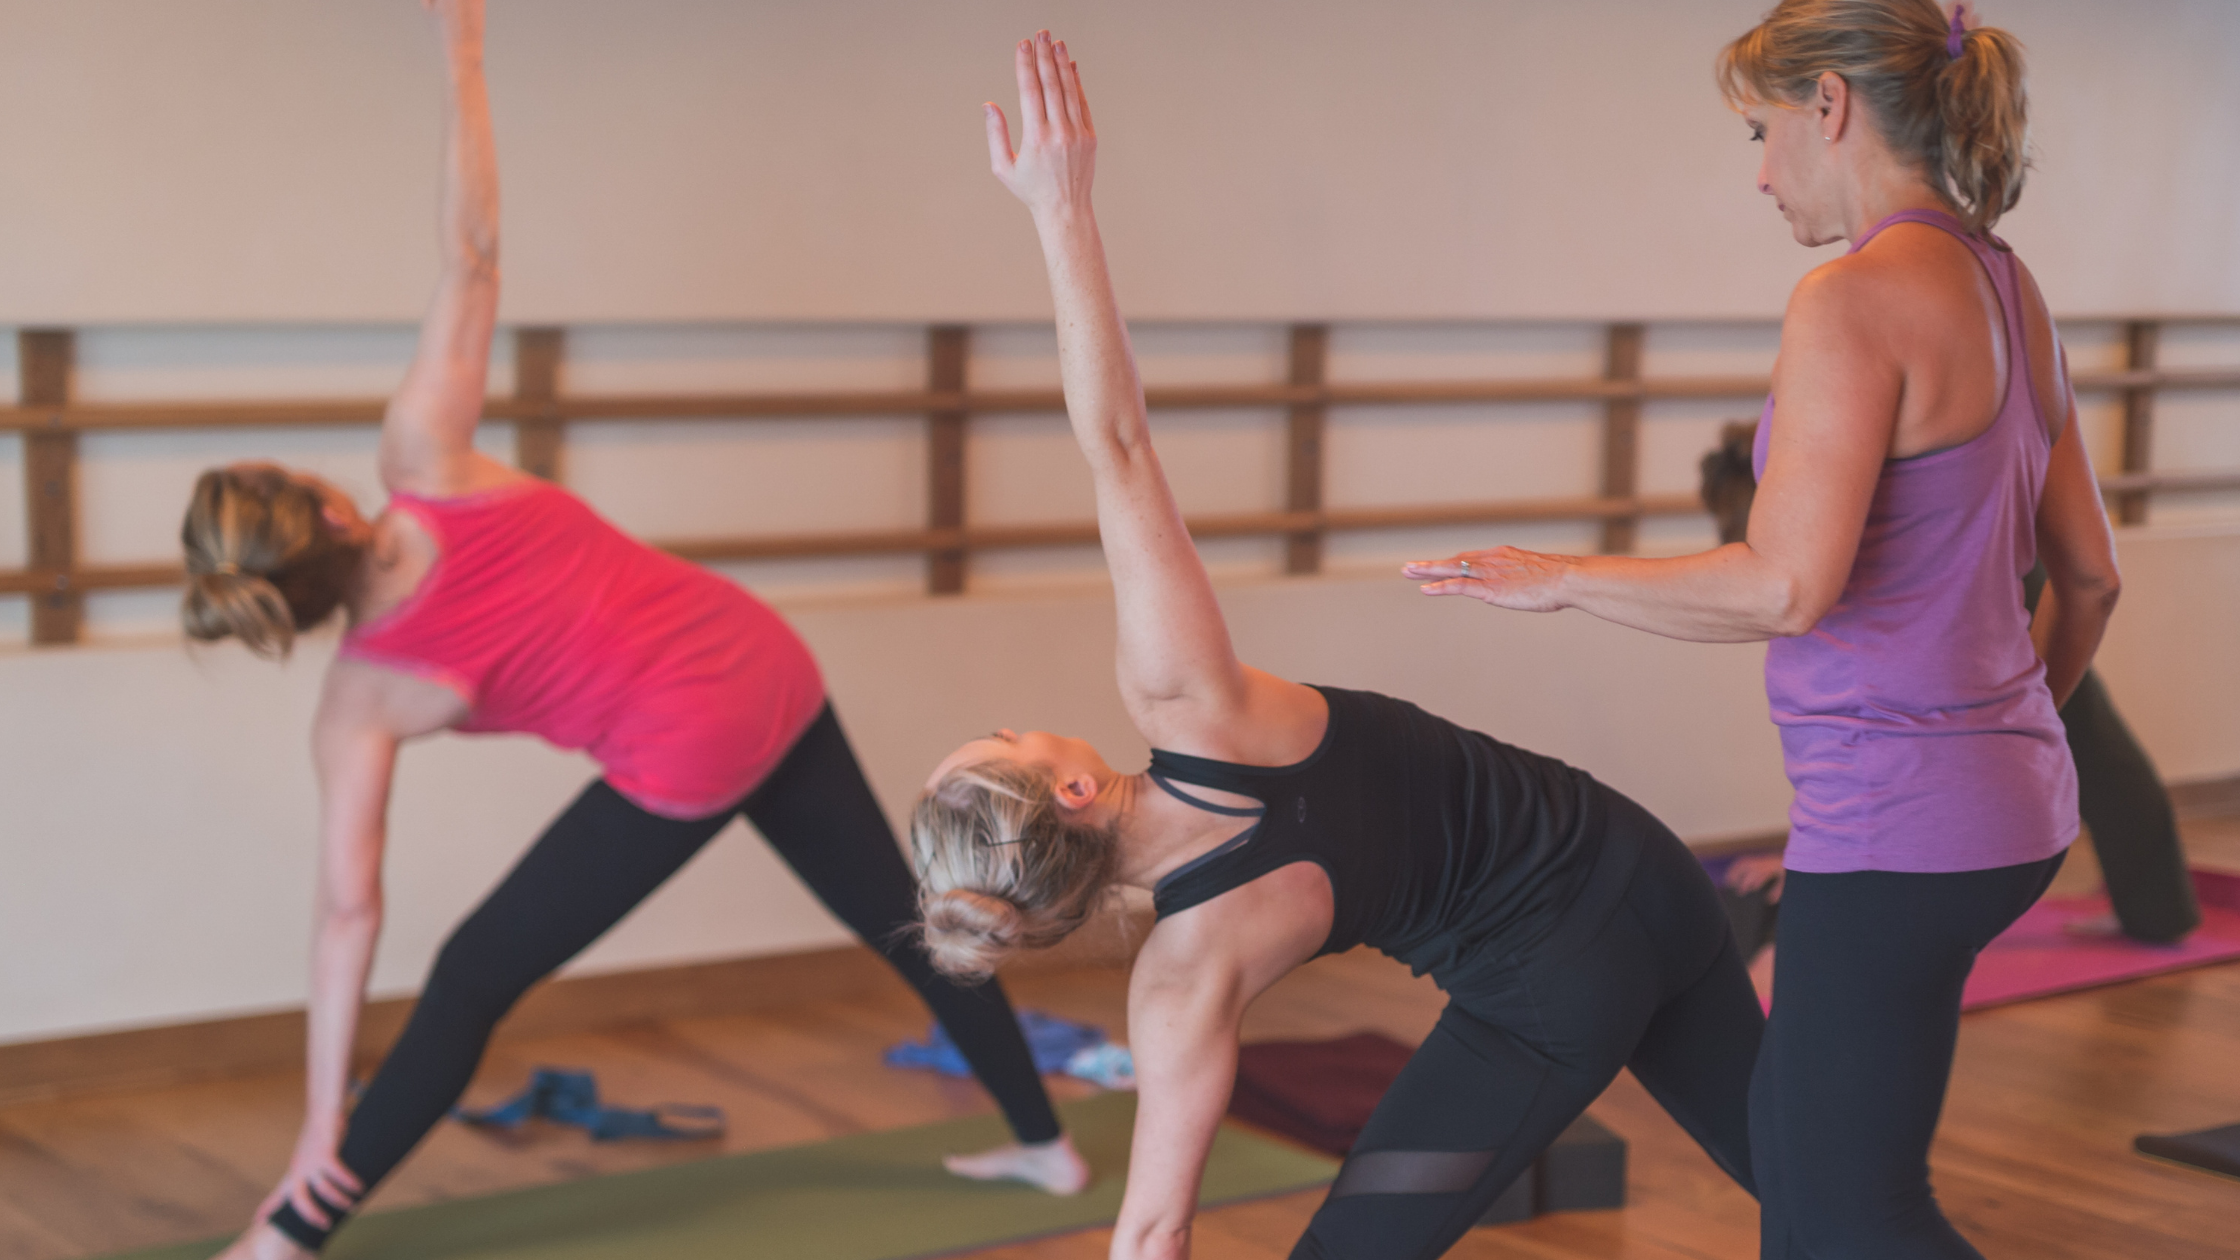 I learned how NOT to run a business in the yoga studio